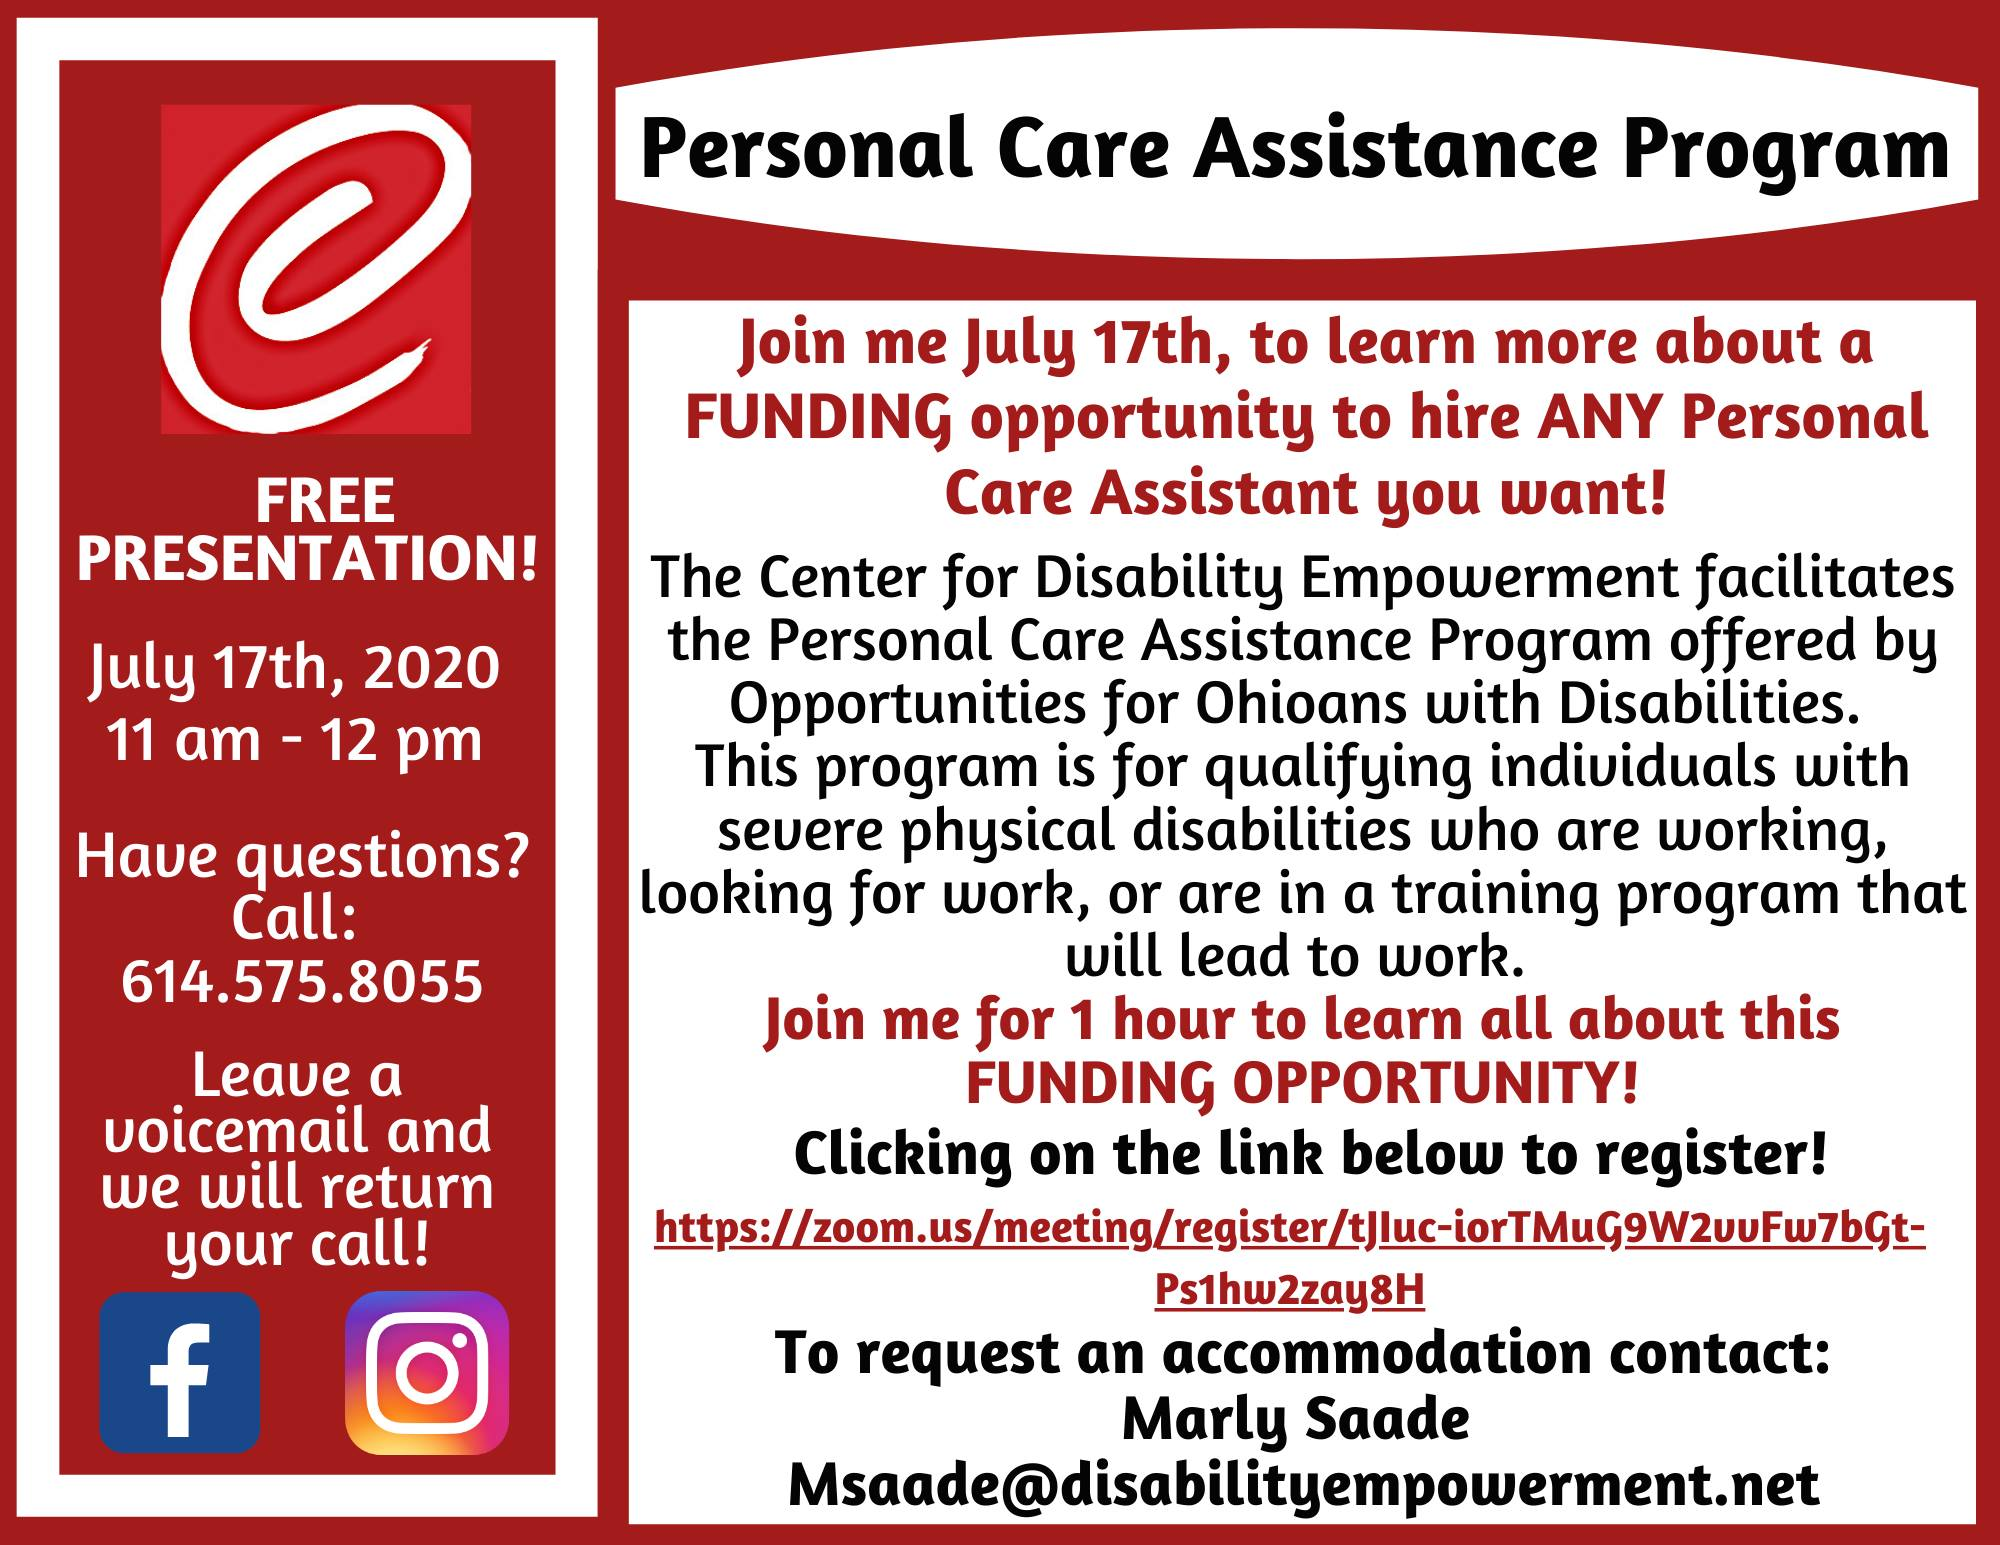 Personal Care Assistance Program